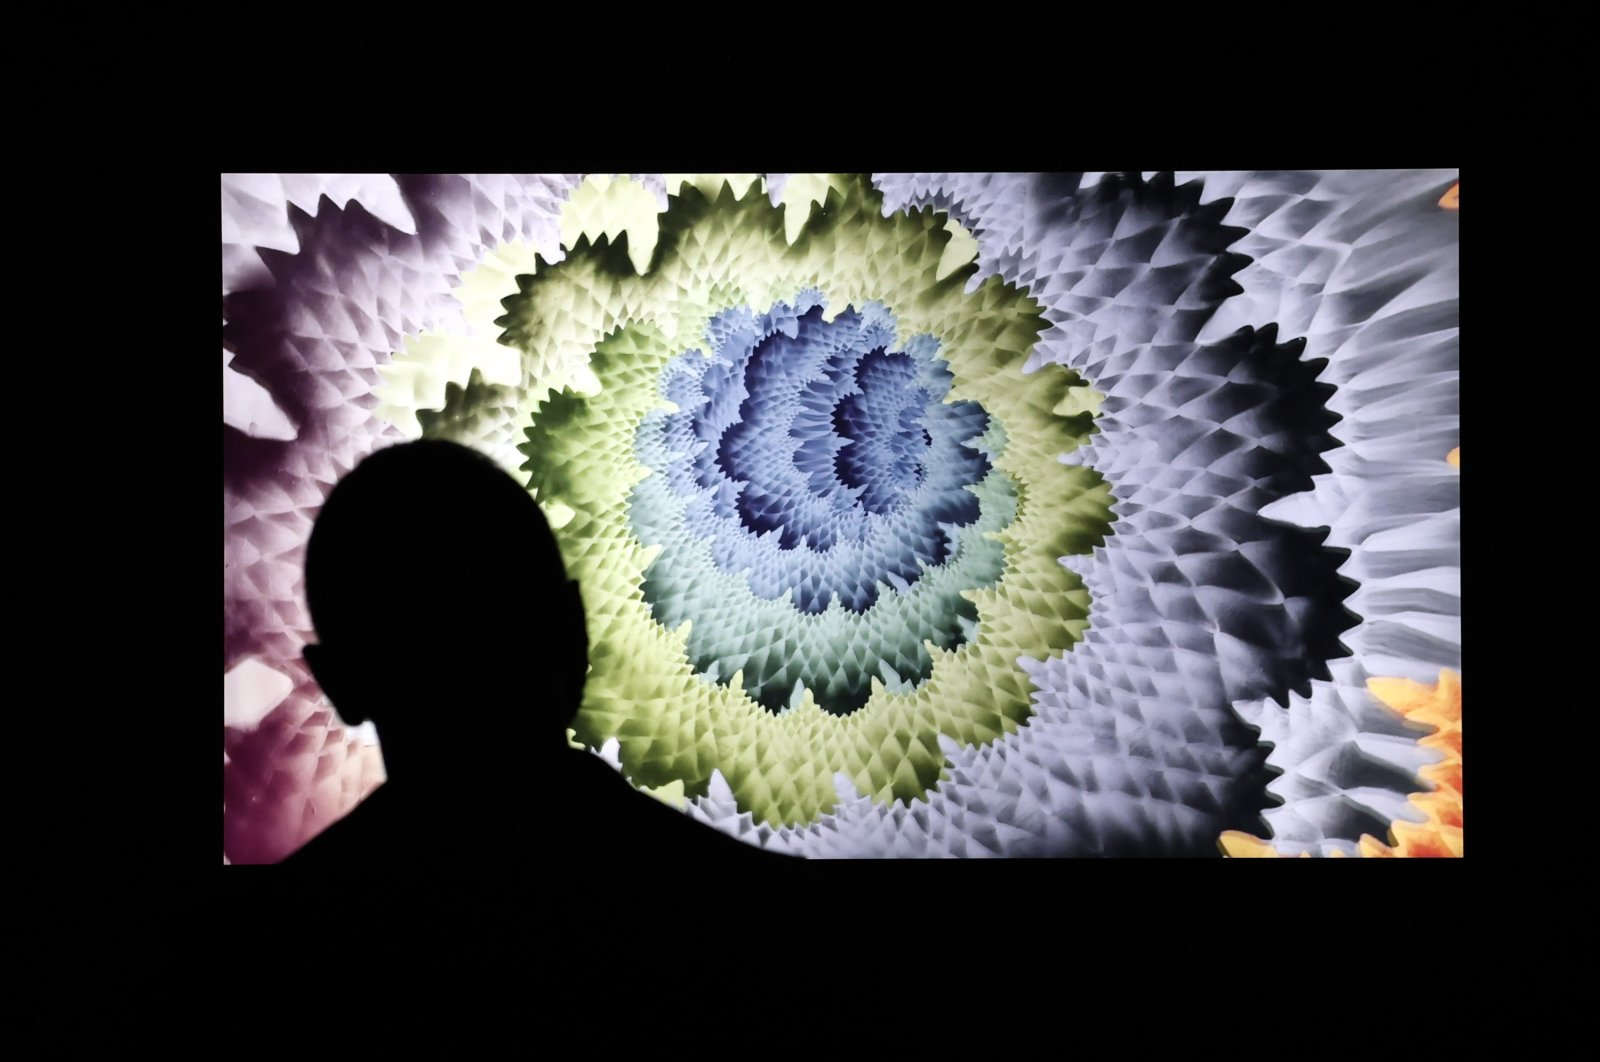 A man looks at a digital NFT artwork during a press preview at the grand opening of Superchief Gallery NFT in New York, U.S., March 25, 2021. (EPA Photo)